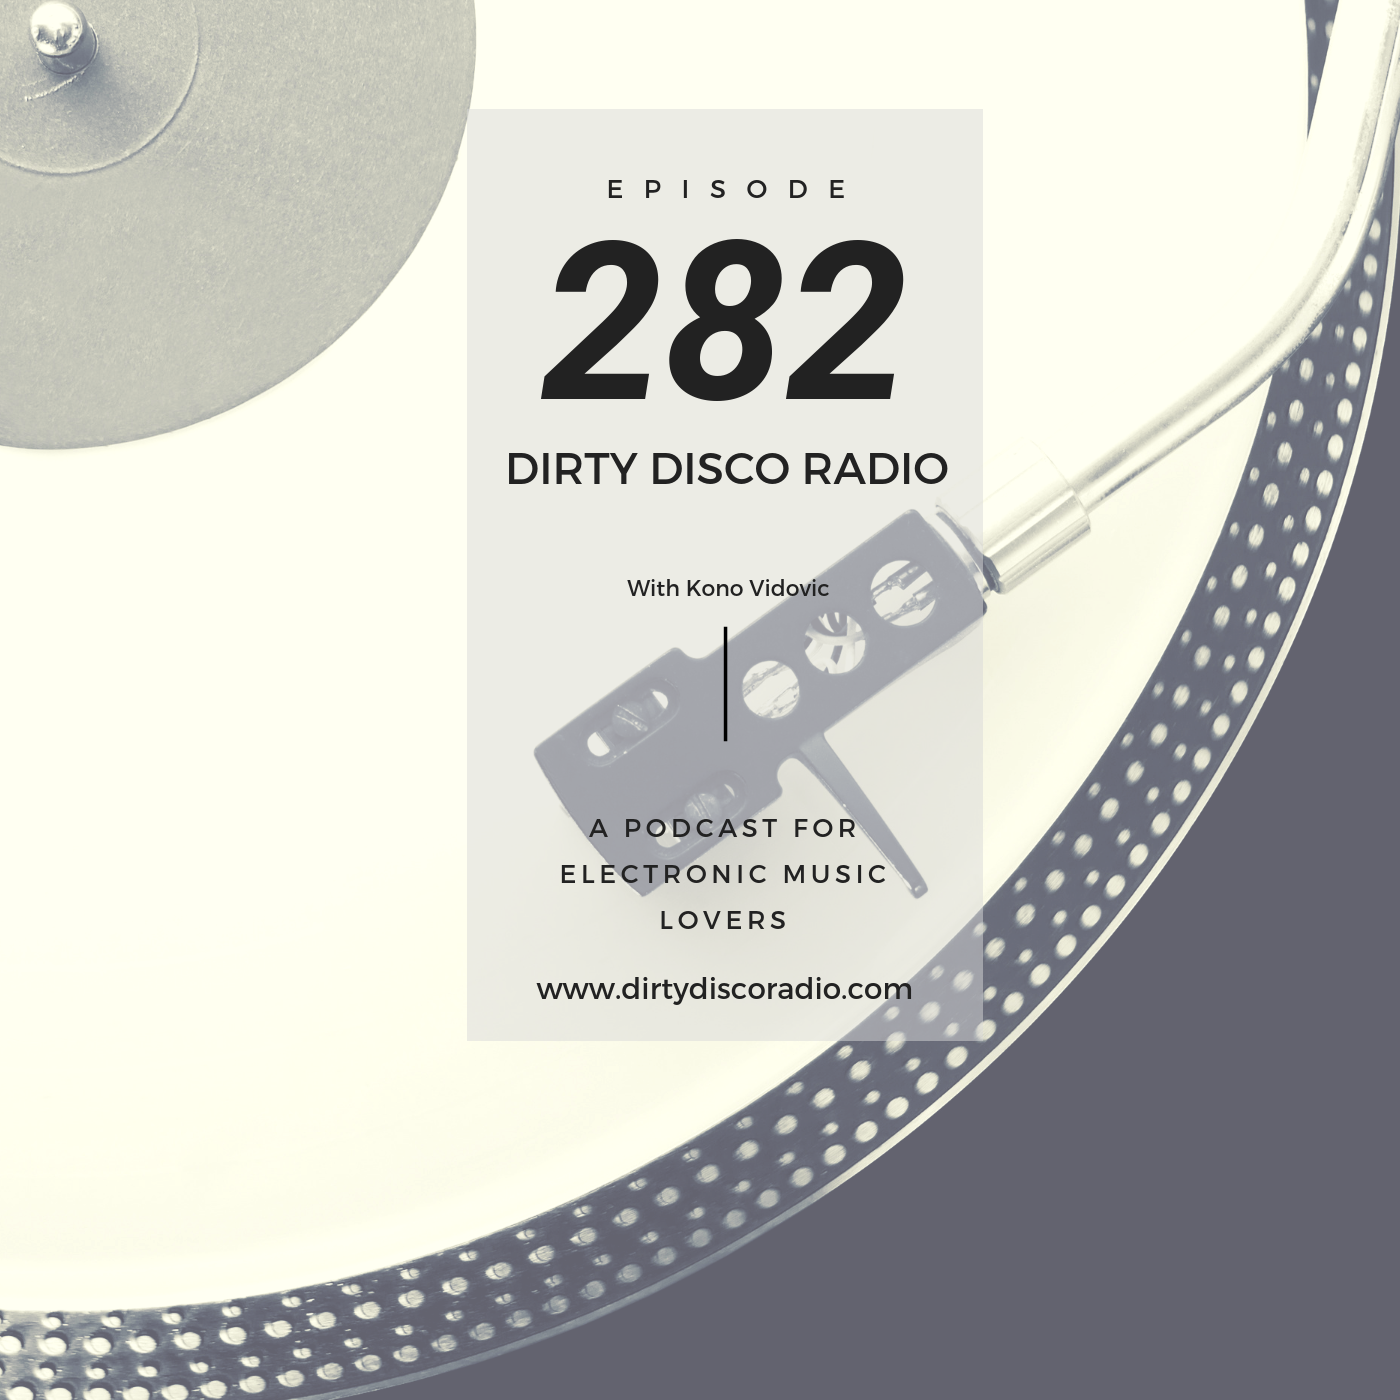 Digital, vinyl or cassette music - Dirty Disco 282